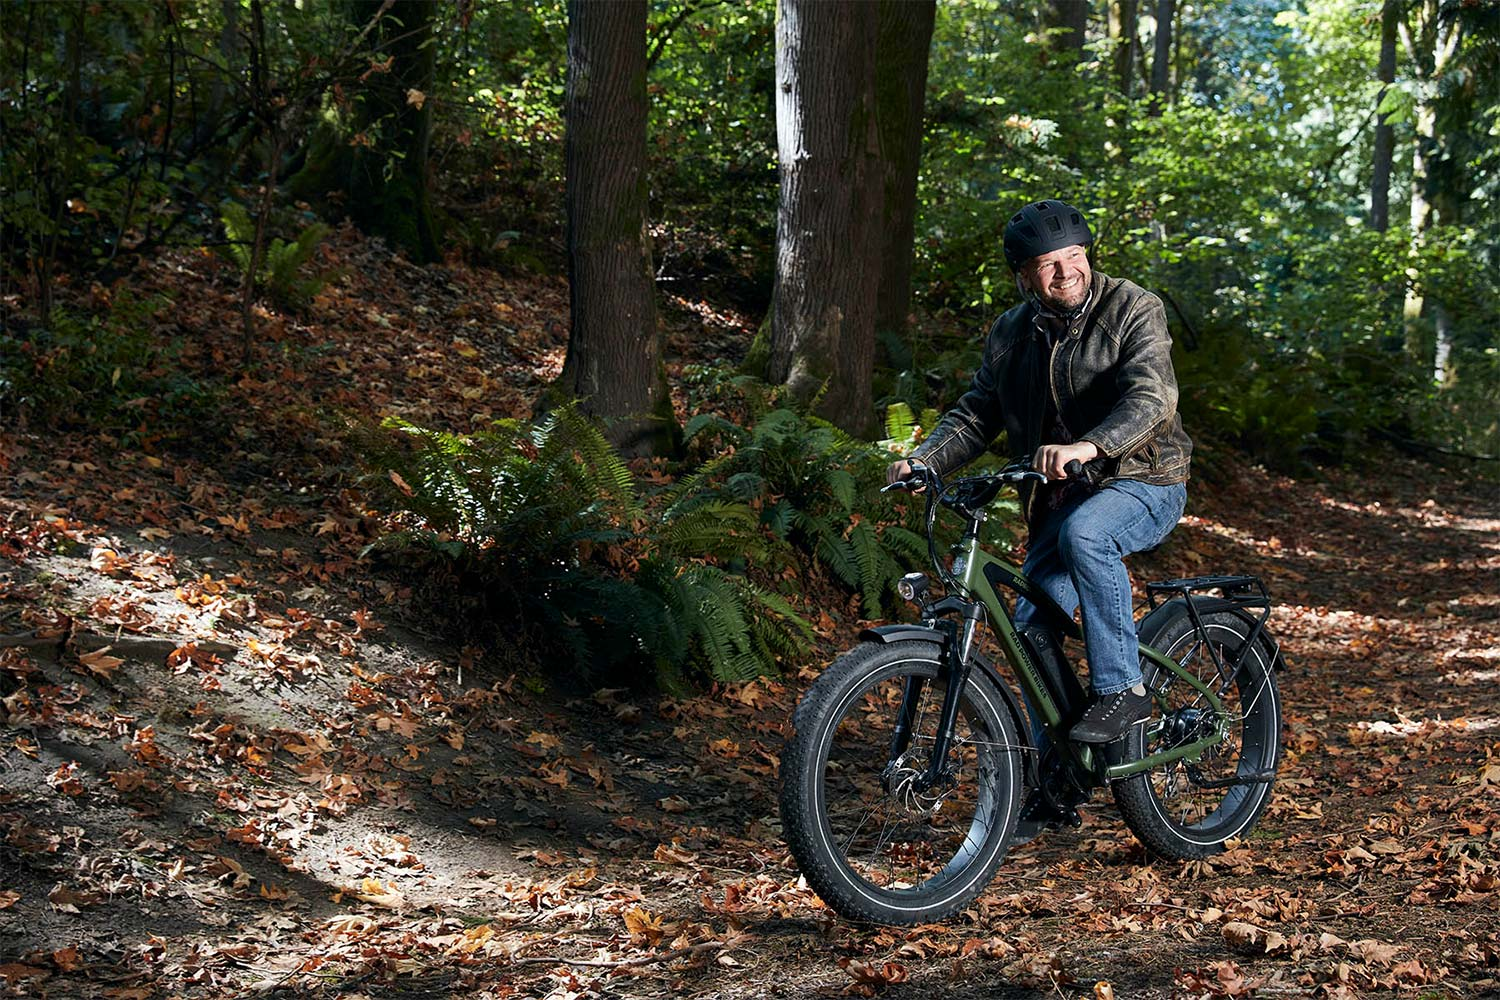 Man riding RadRover bike in the forest